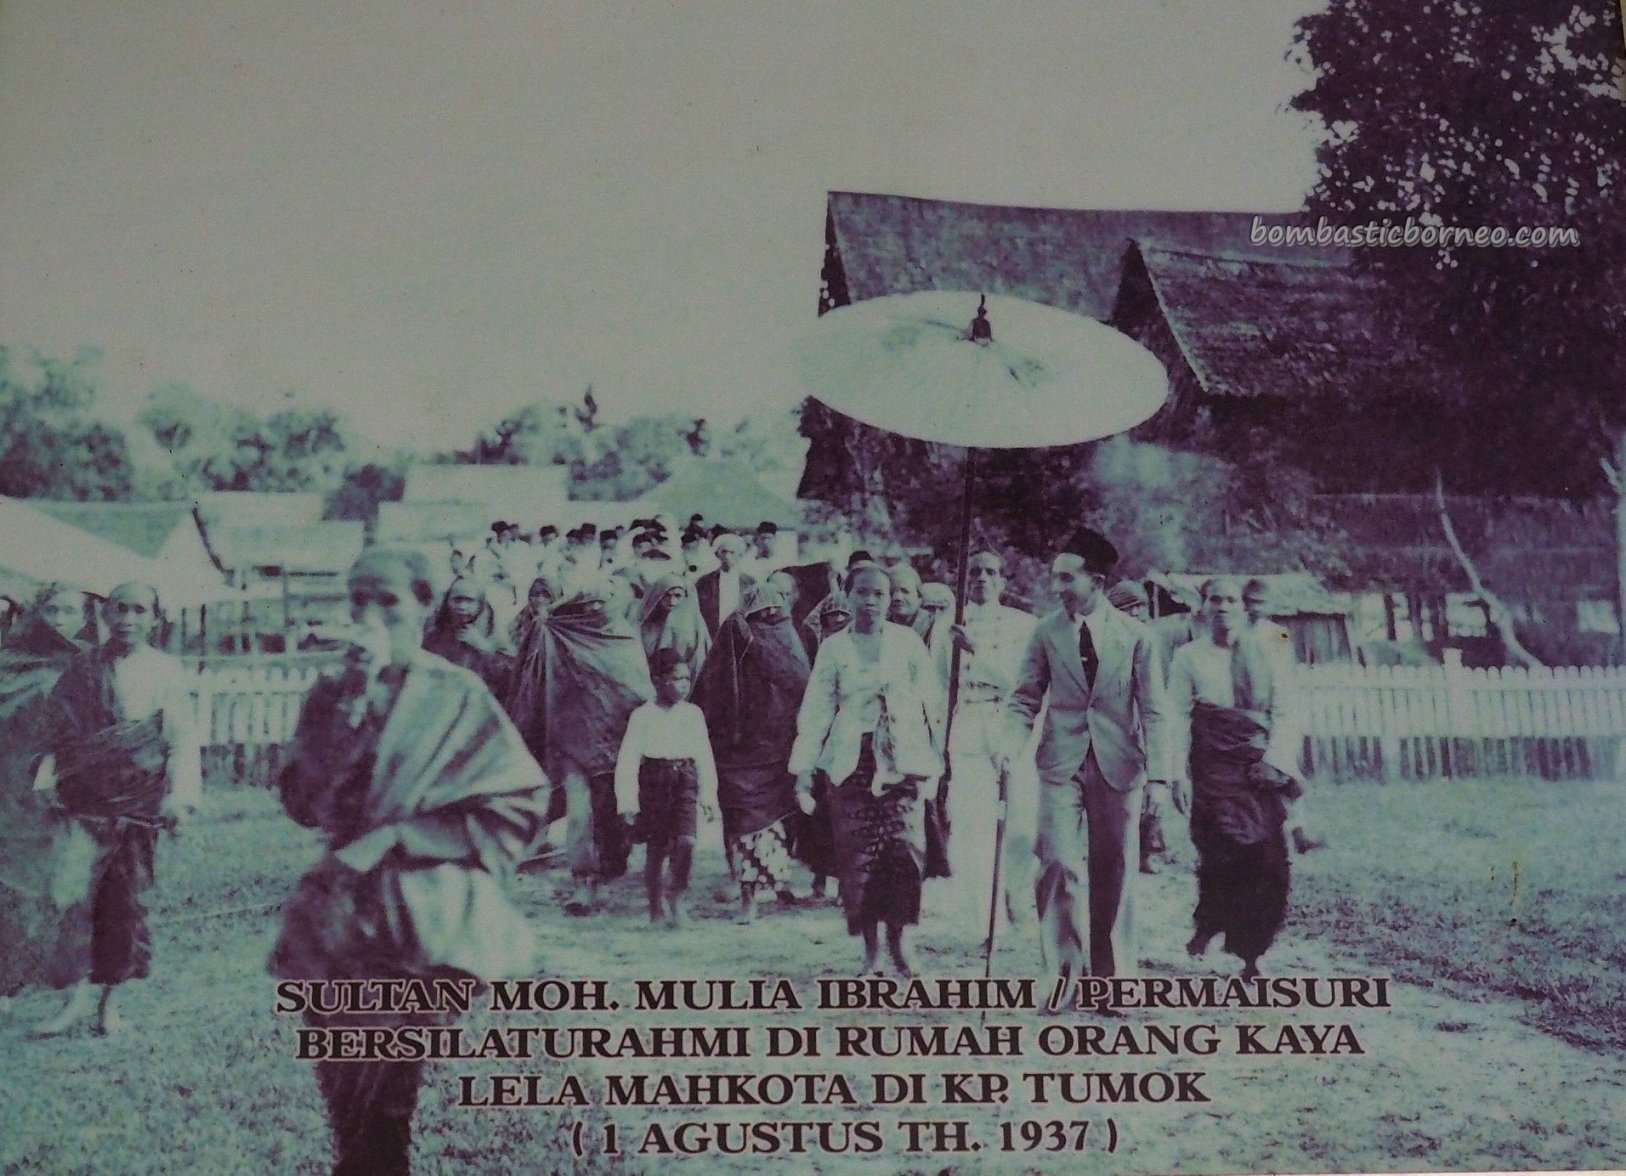 Istana Kerajaan, Keraton, Malay Sultanate, sejarah, ancient, traditional, backpackers, Dayak Melayik, Ethnic, Indonesia, museum, Obyek wisata, Tourism, 婆羅洲旅游景点, 三发西加里曼丹